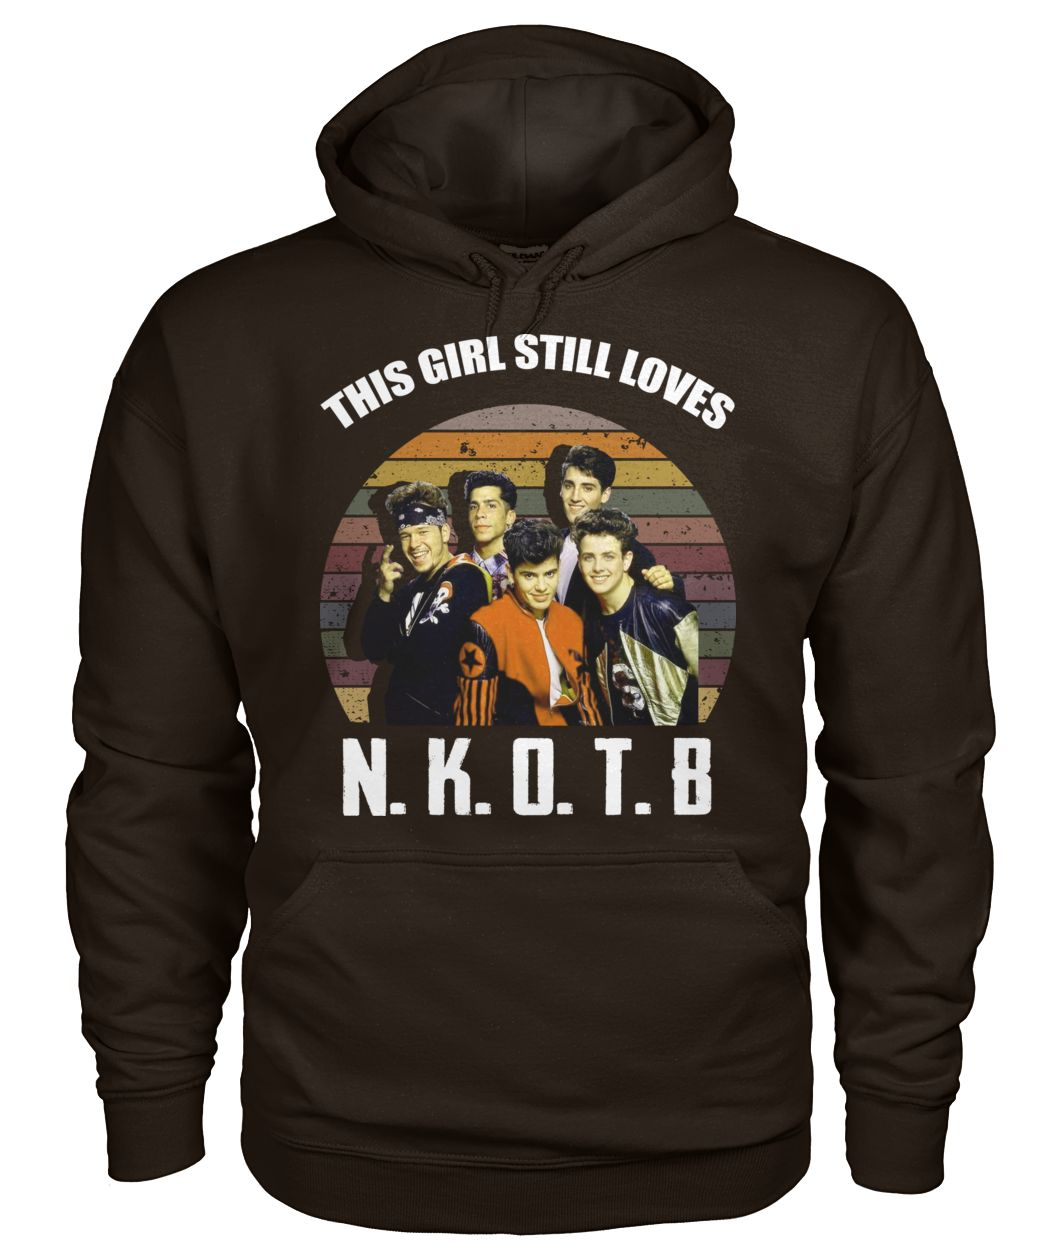 Vintage this girl still loves nkotb gildan hoodie